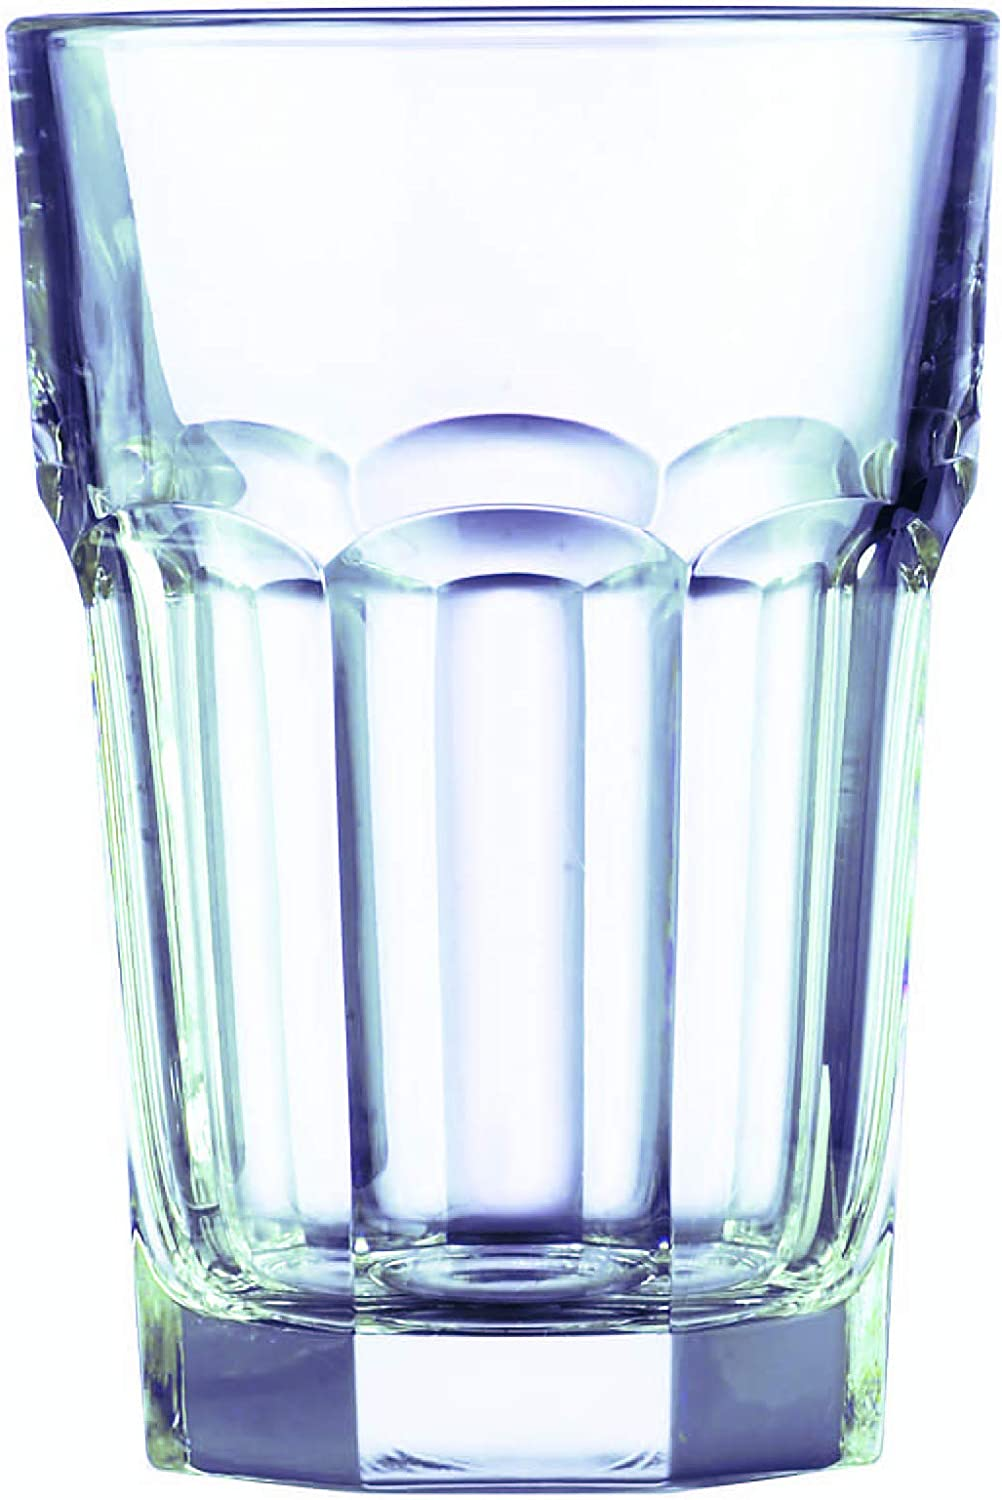 Arc Cardinal Arcoroc Fully Tempered Gotham Beverage Glass, 14-Ounce, Clear, Case of 36